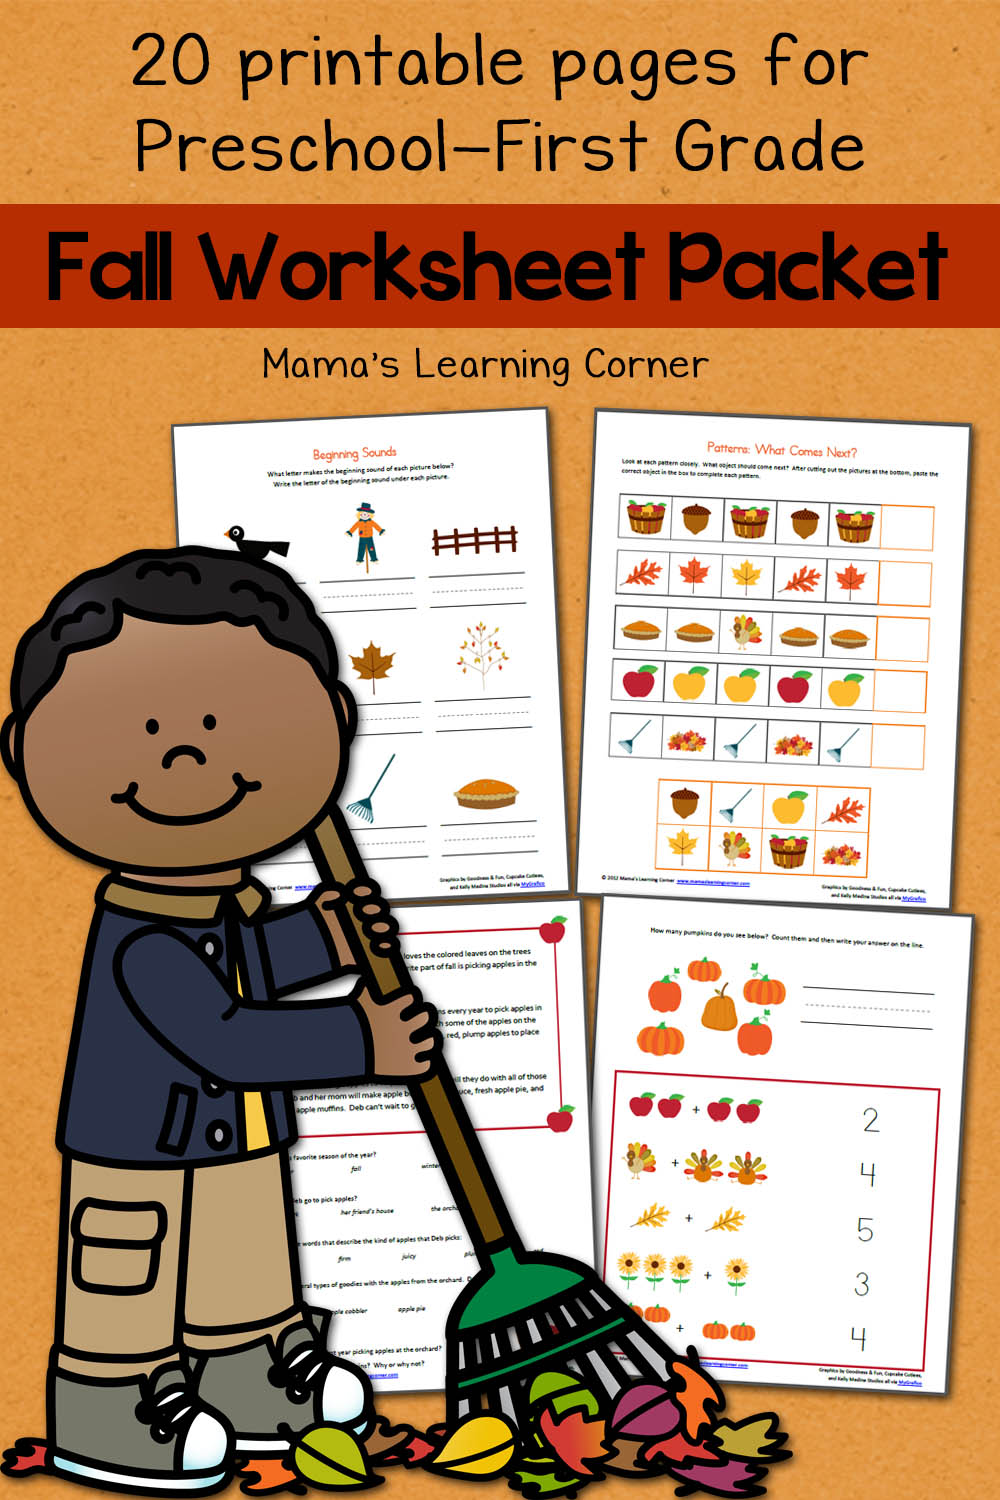 hight resolution of Fall Worksheet Packet for Preschool-First Grade - Mamas Learning Corner